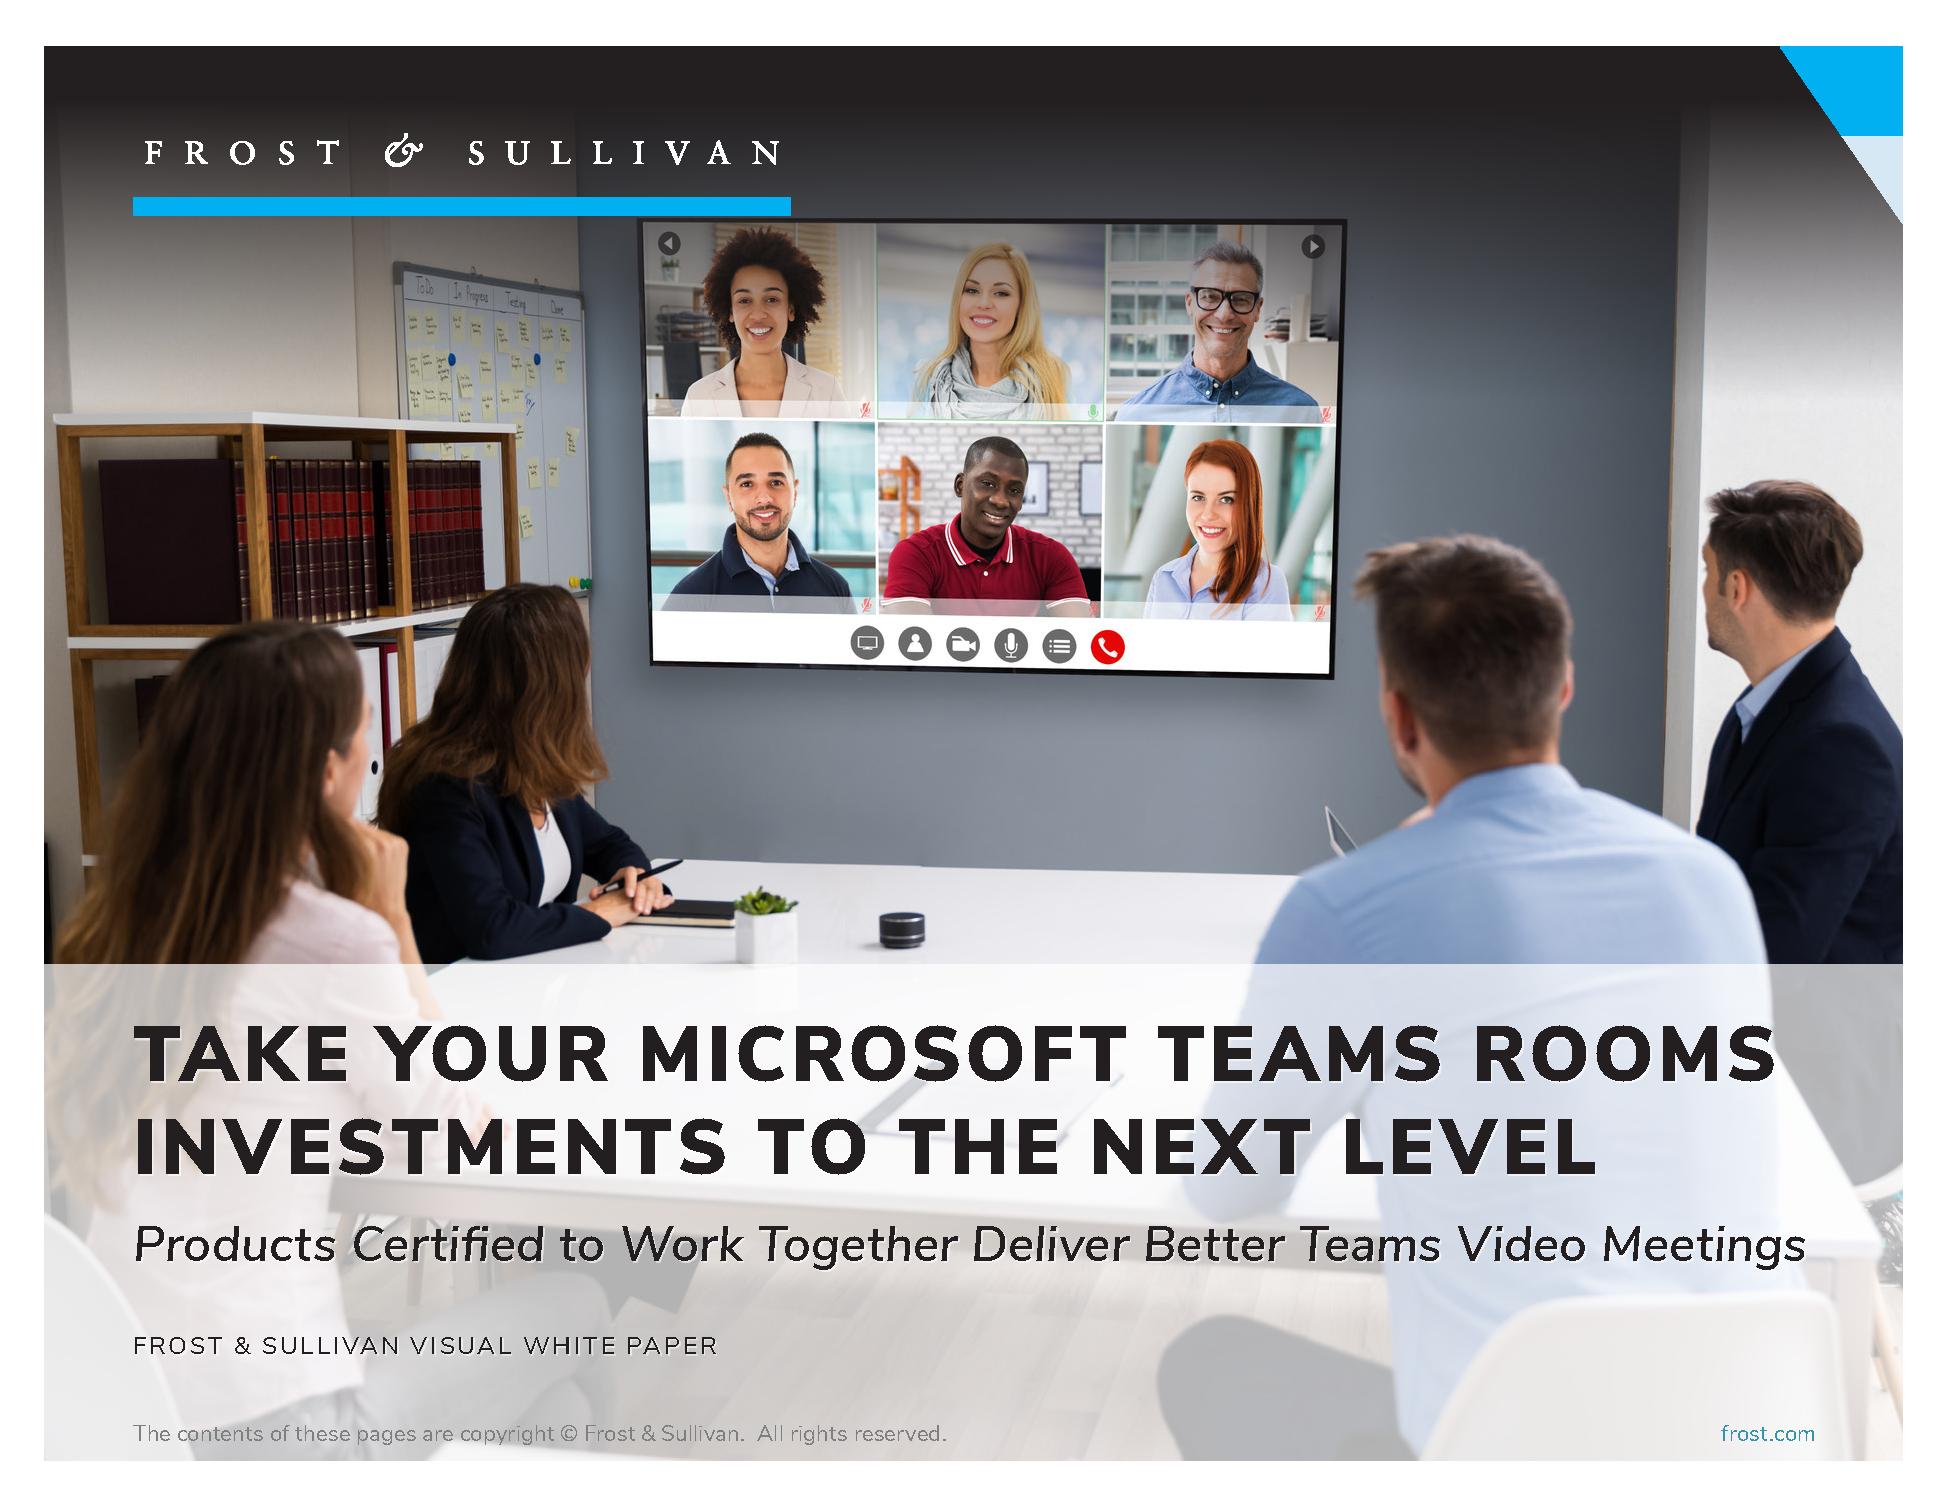 ake Your Microsoft Teams Rooms Investments to the Next Level